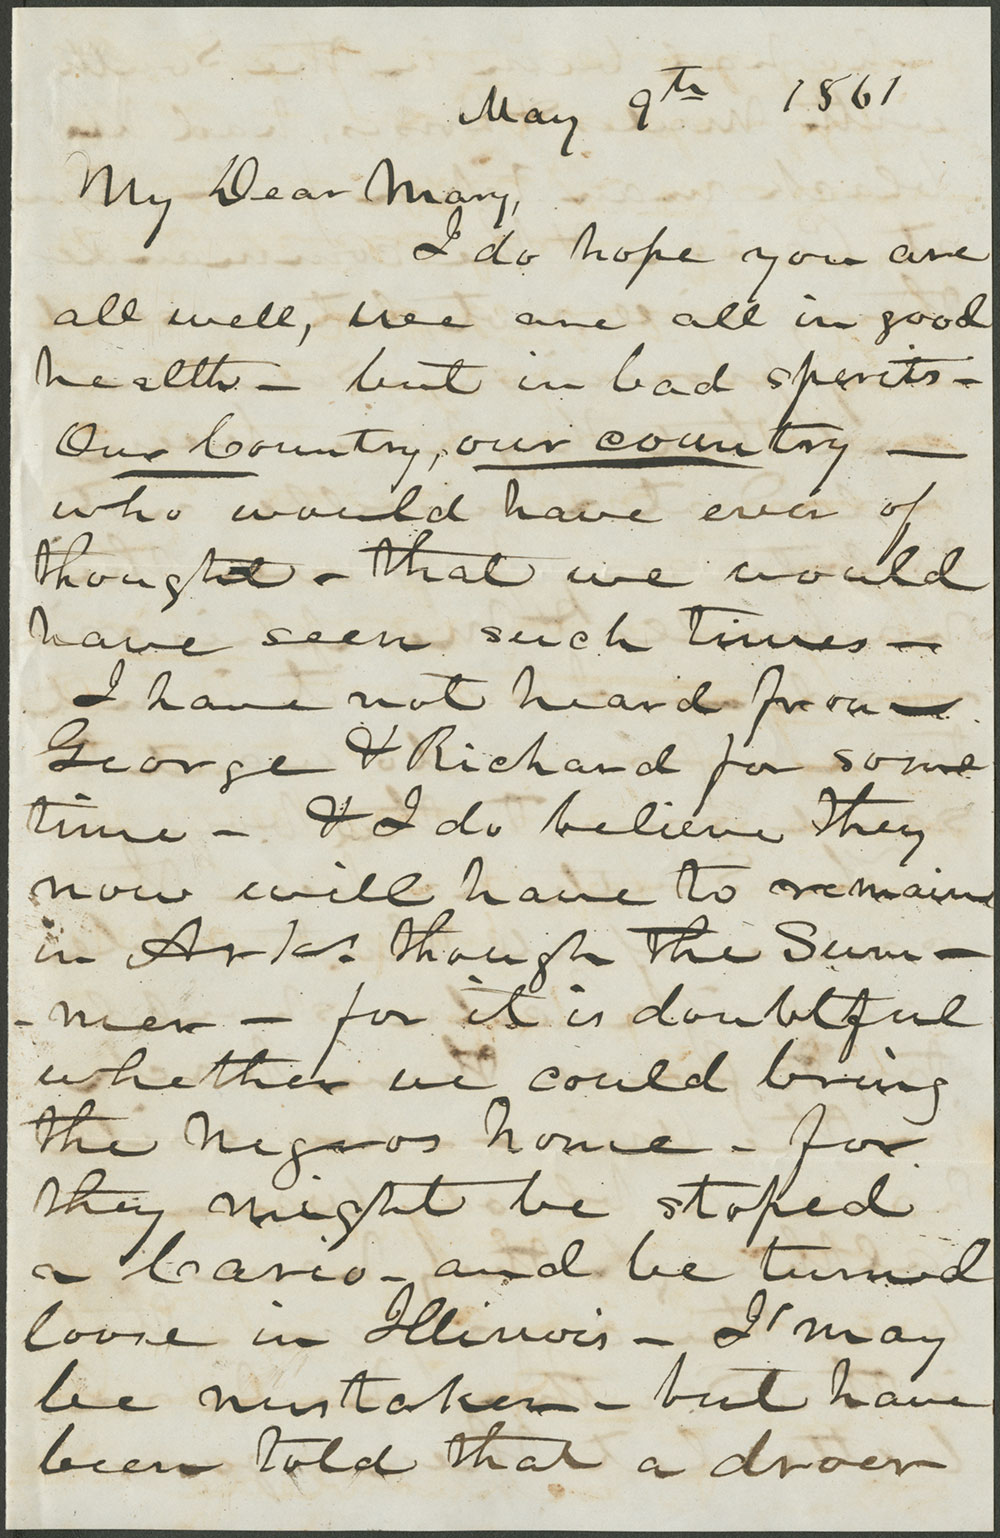 Gavan Drummond Hunt to Mary D. Craig 9 May, 1861 (MSS 7809)